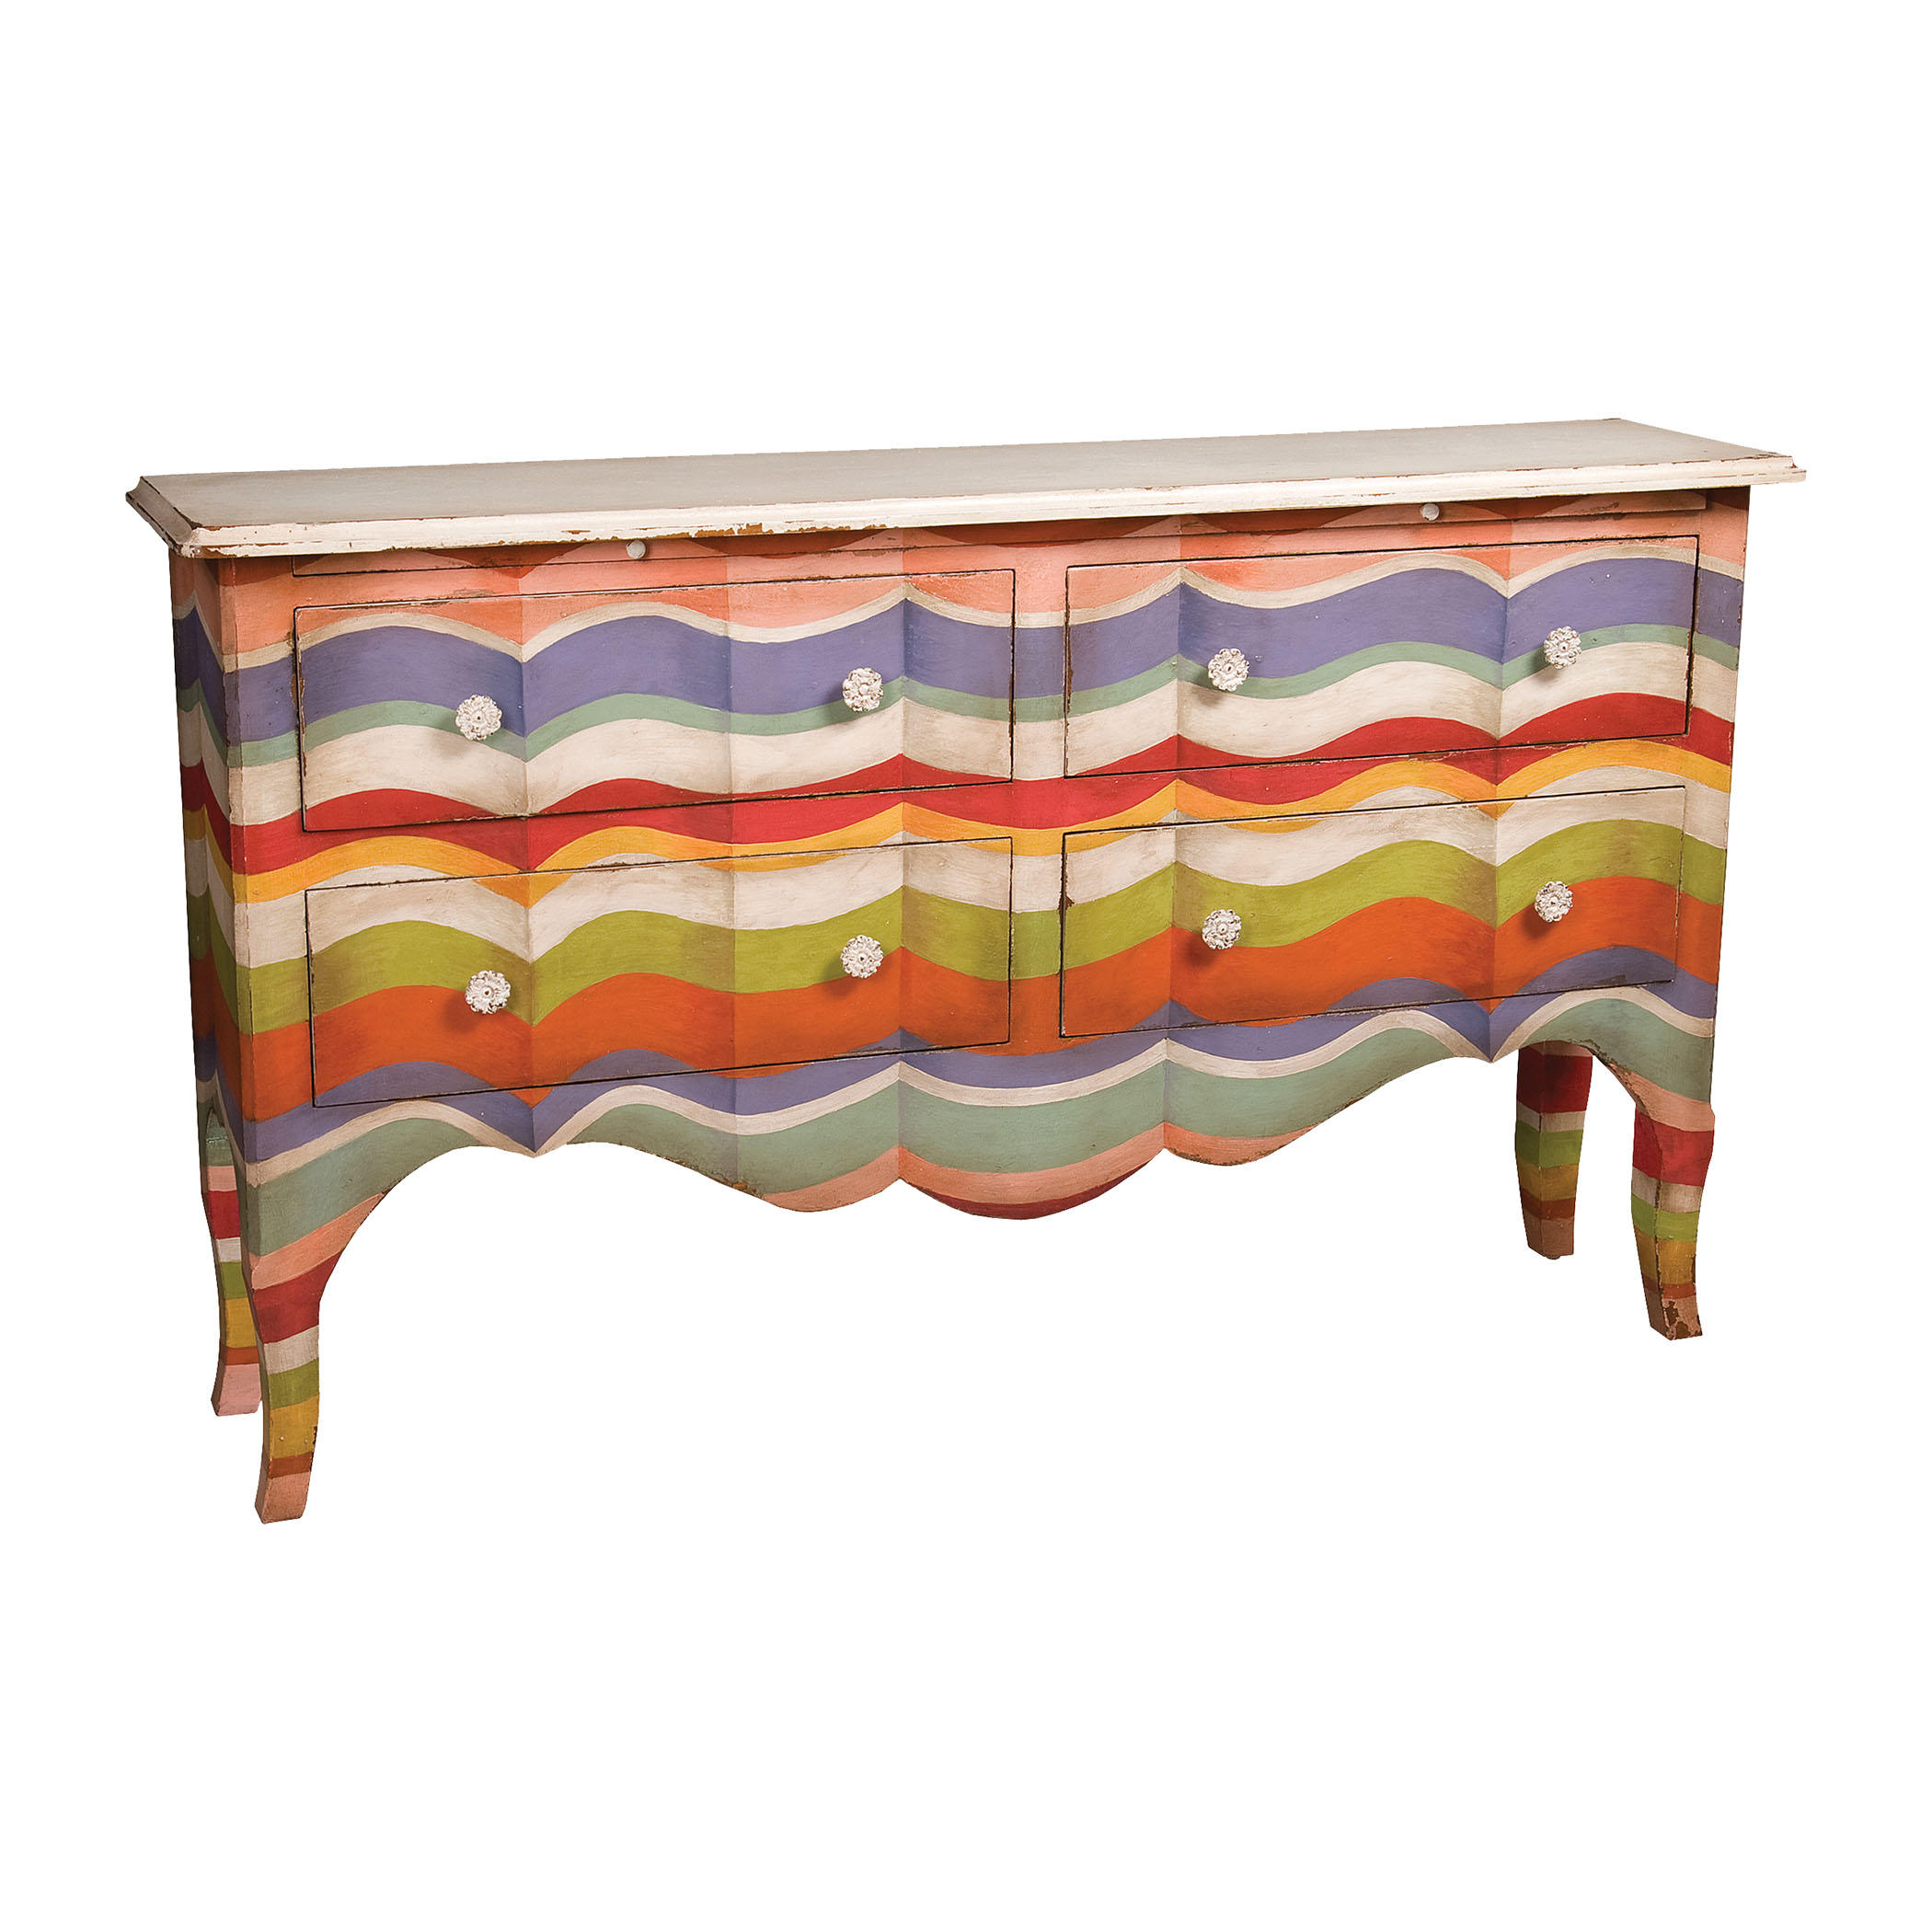 4-Drawer Sideboard in Multi-Color Stripes with Signature Antique White Top | Elk Home